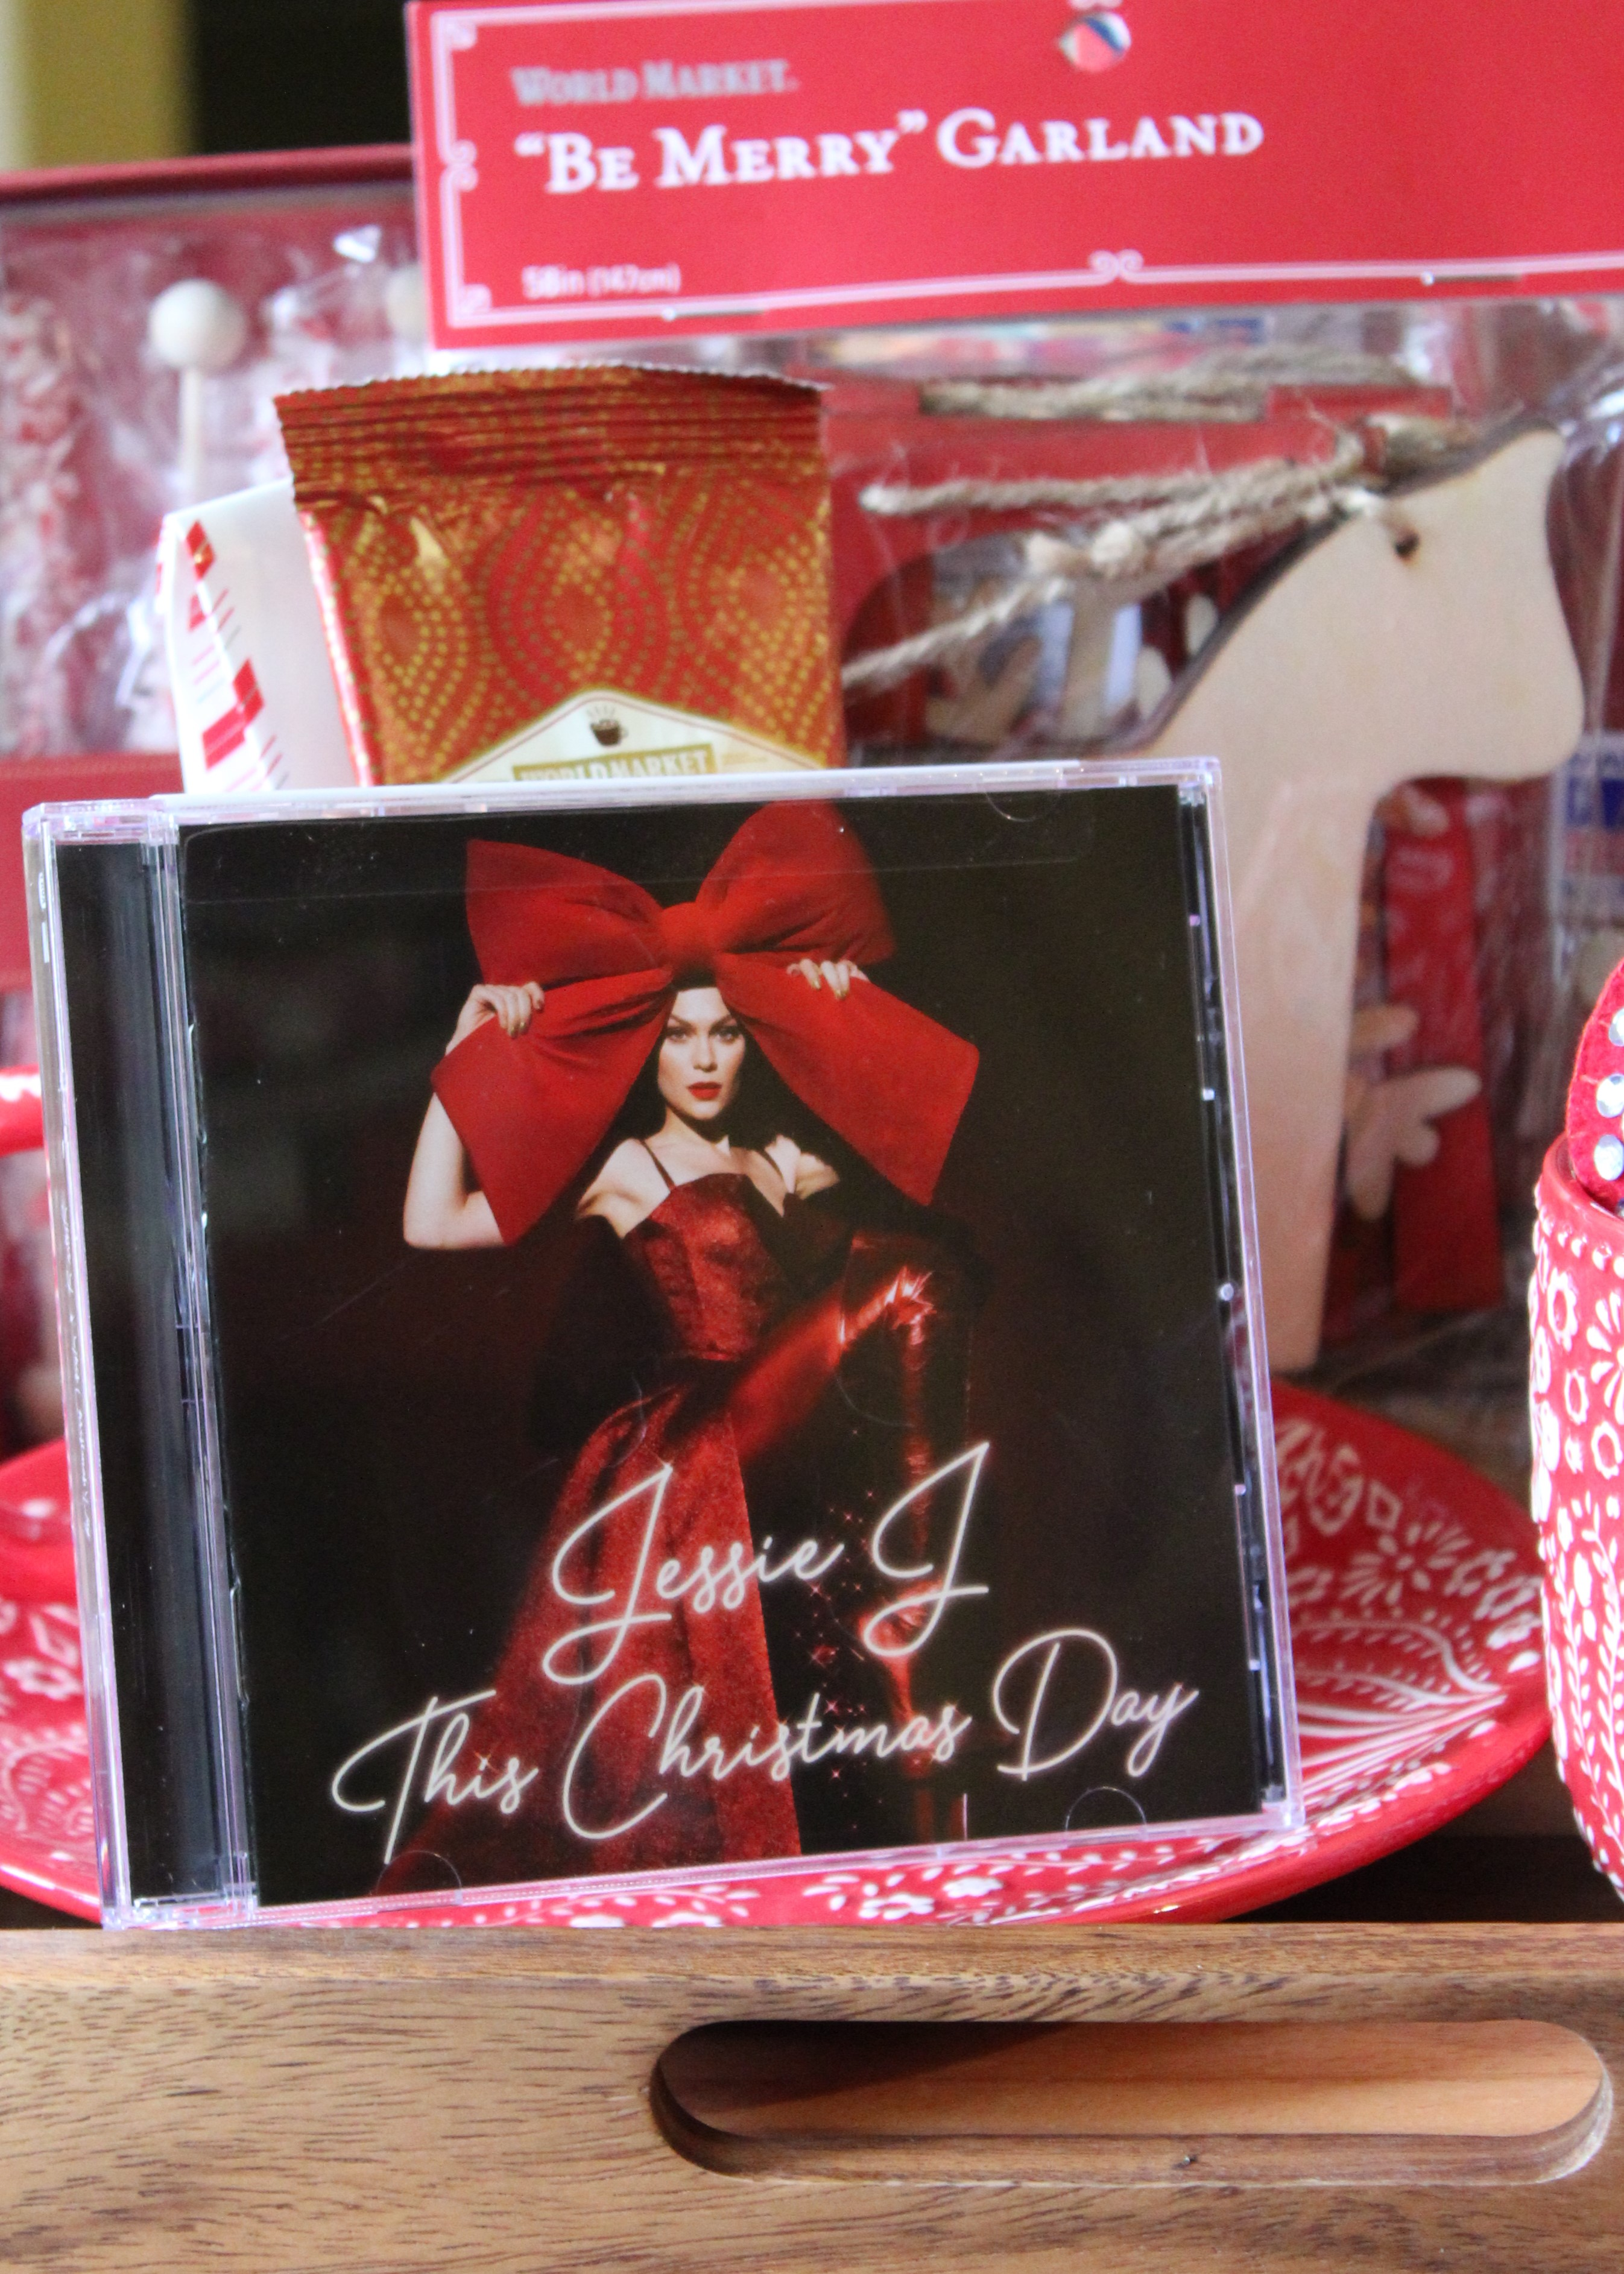 Jessie J This Christmas Day.World Market Star Maker Song Contest Time For Christmas